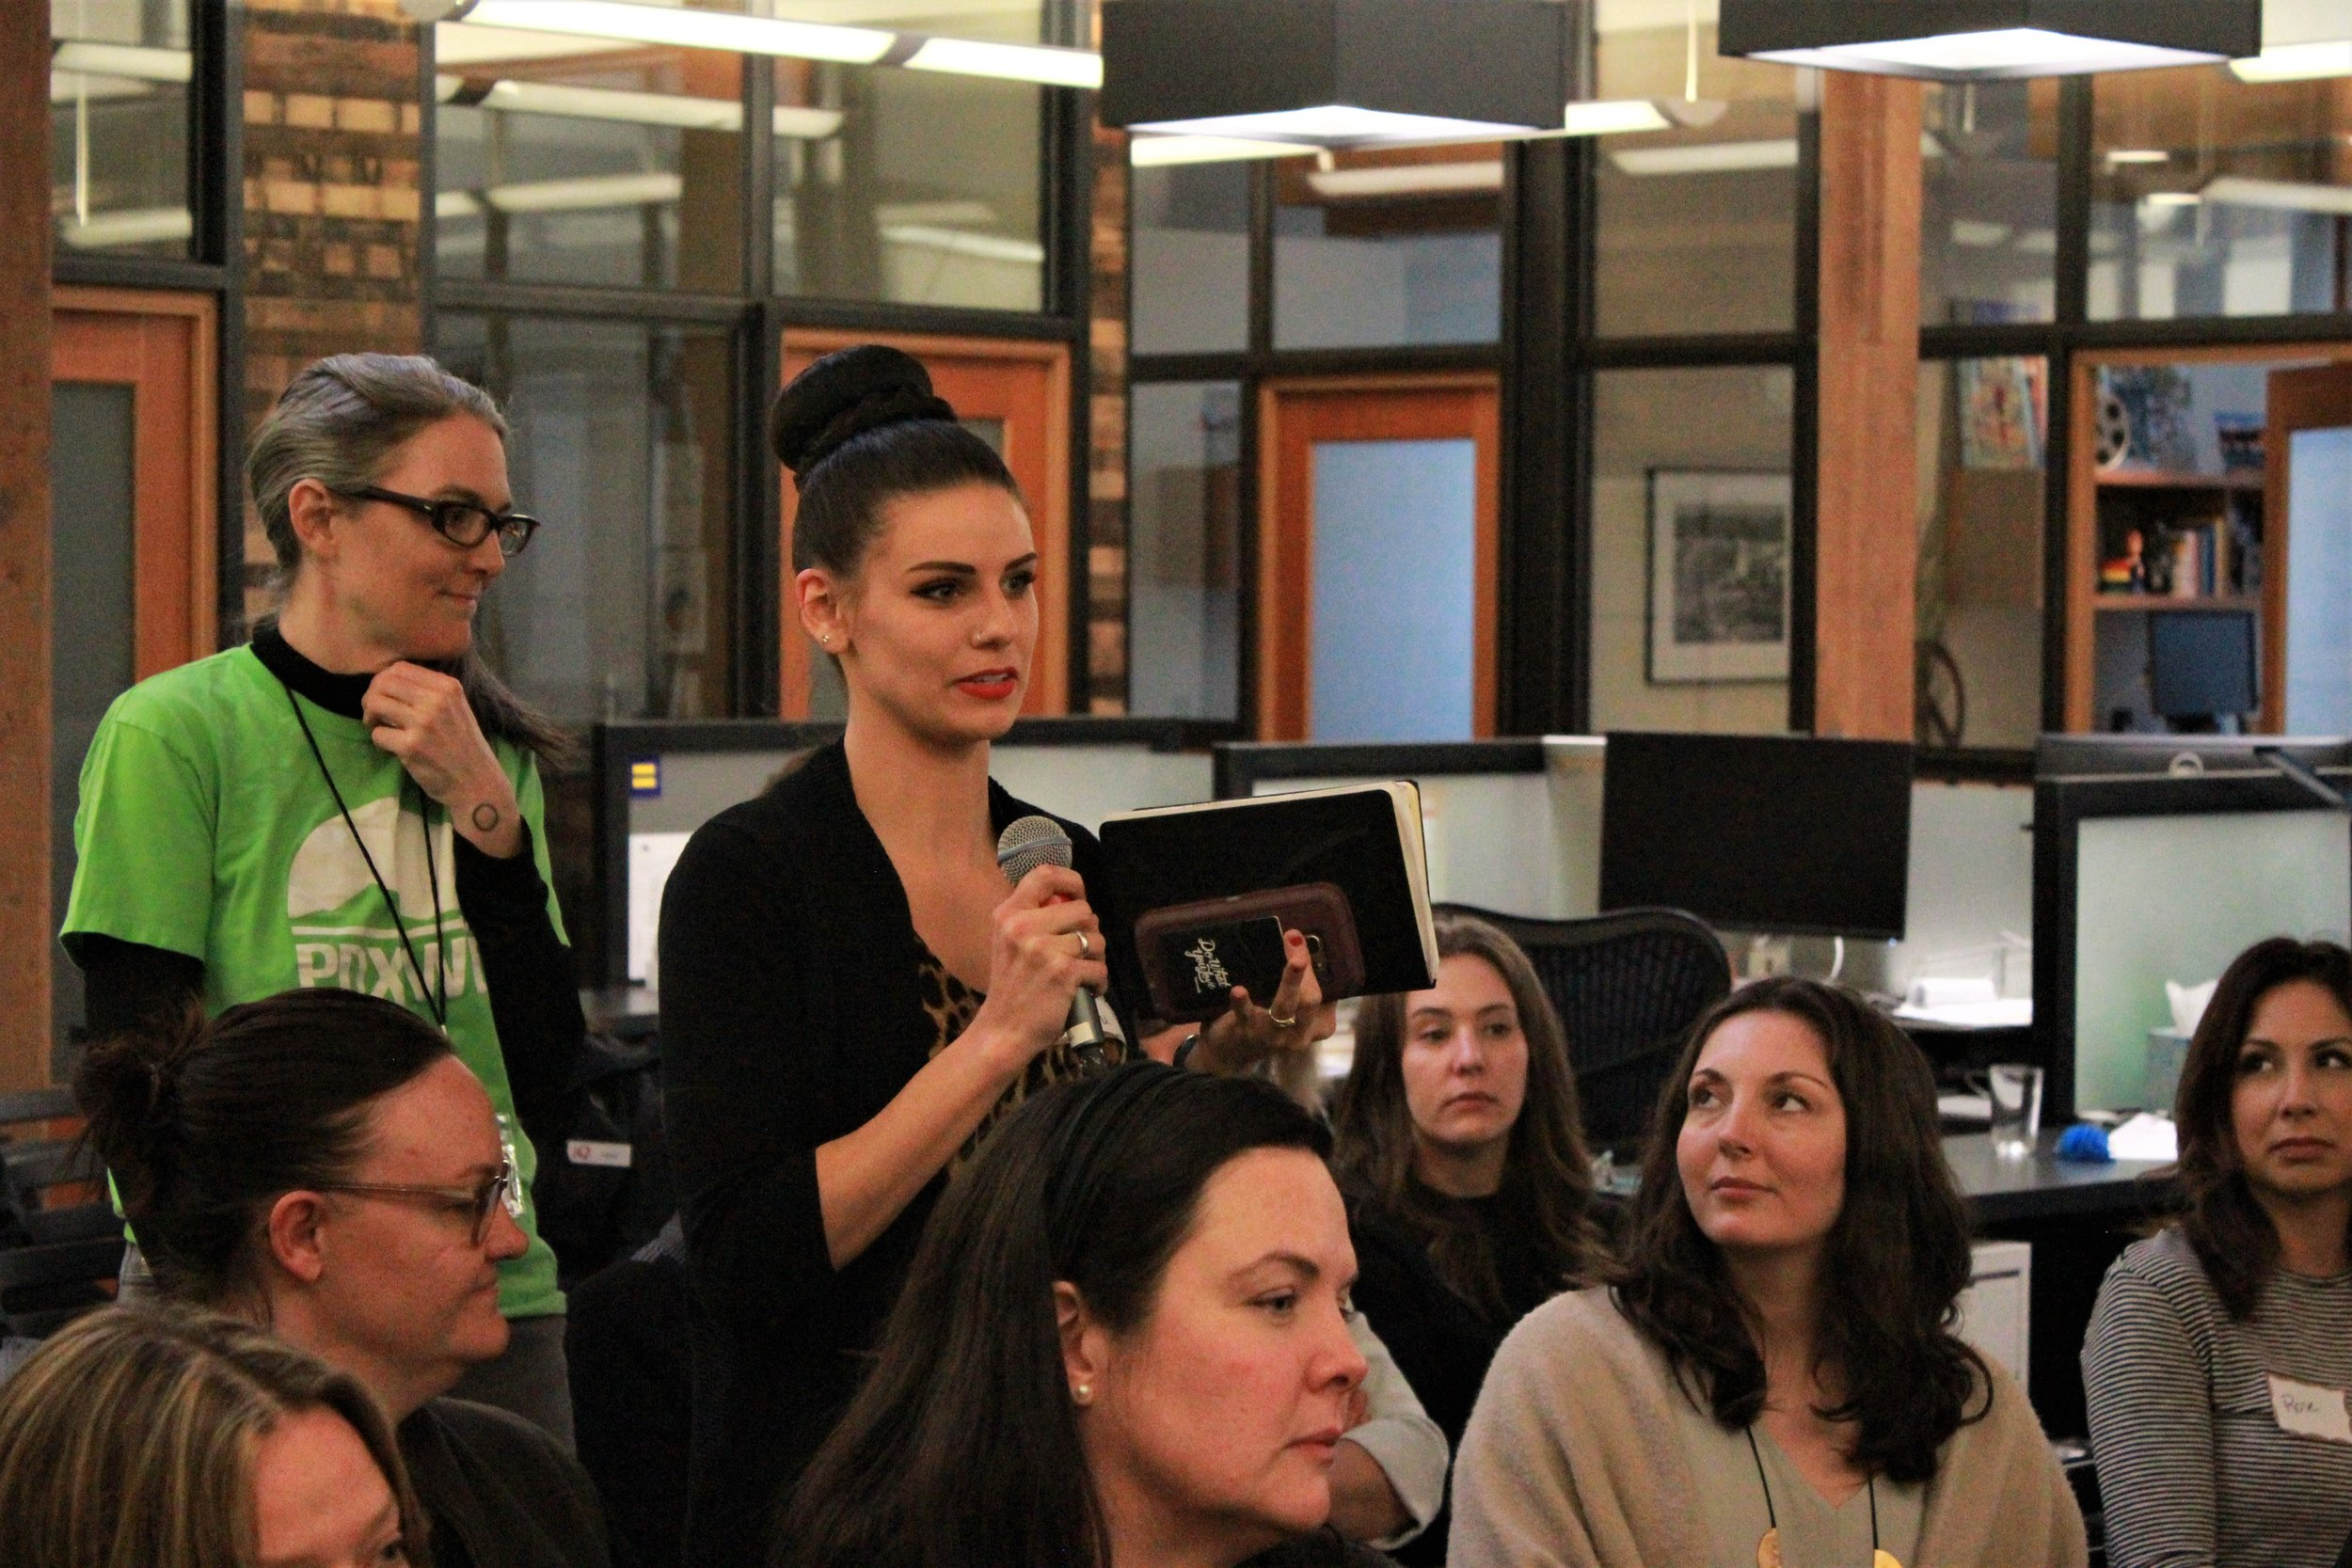 PDXWIT Creative Women in Tech @ R2C, 3/27/19, An attendees asks a question during Q&A